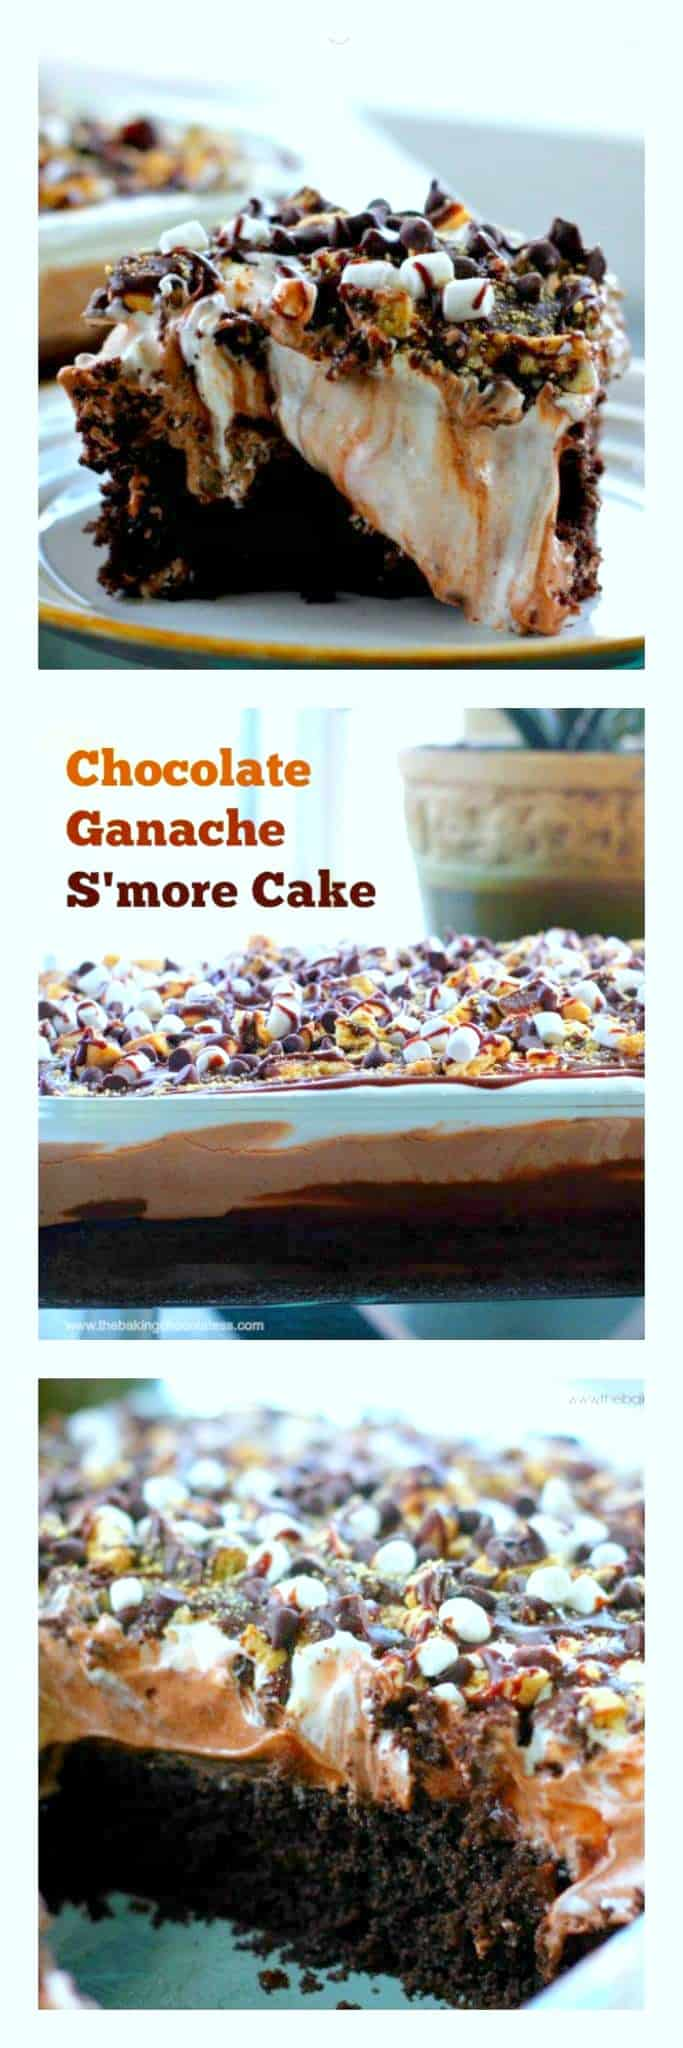 Chocolate Ganache S\'More Cake {It\'s What Sweet Dreams are Made of}